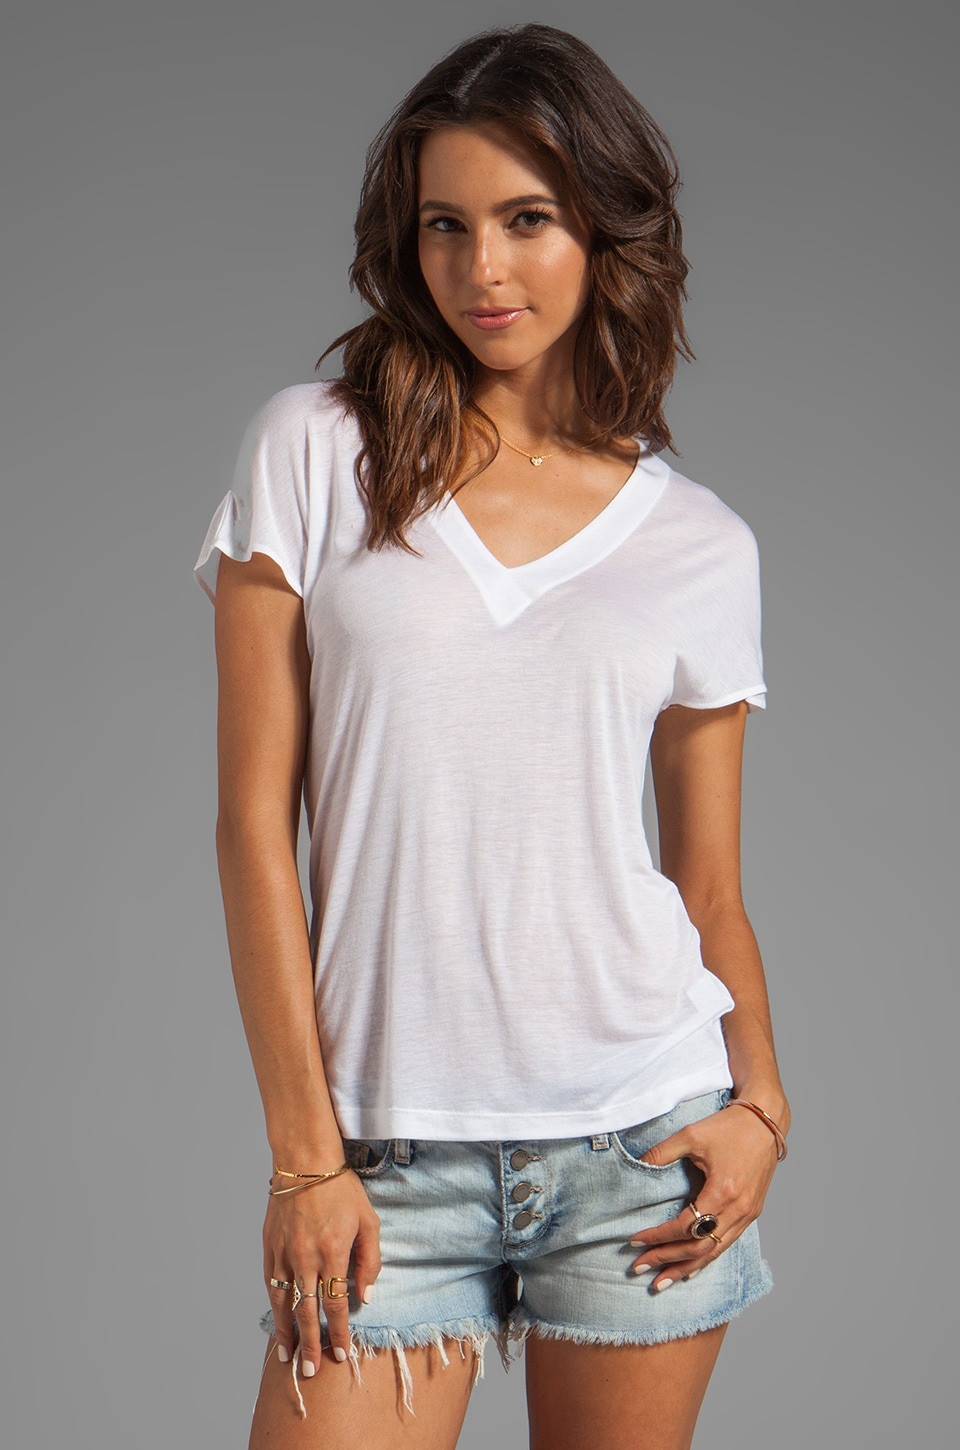 Kain Sheer Jersey Ashland Tee in White